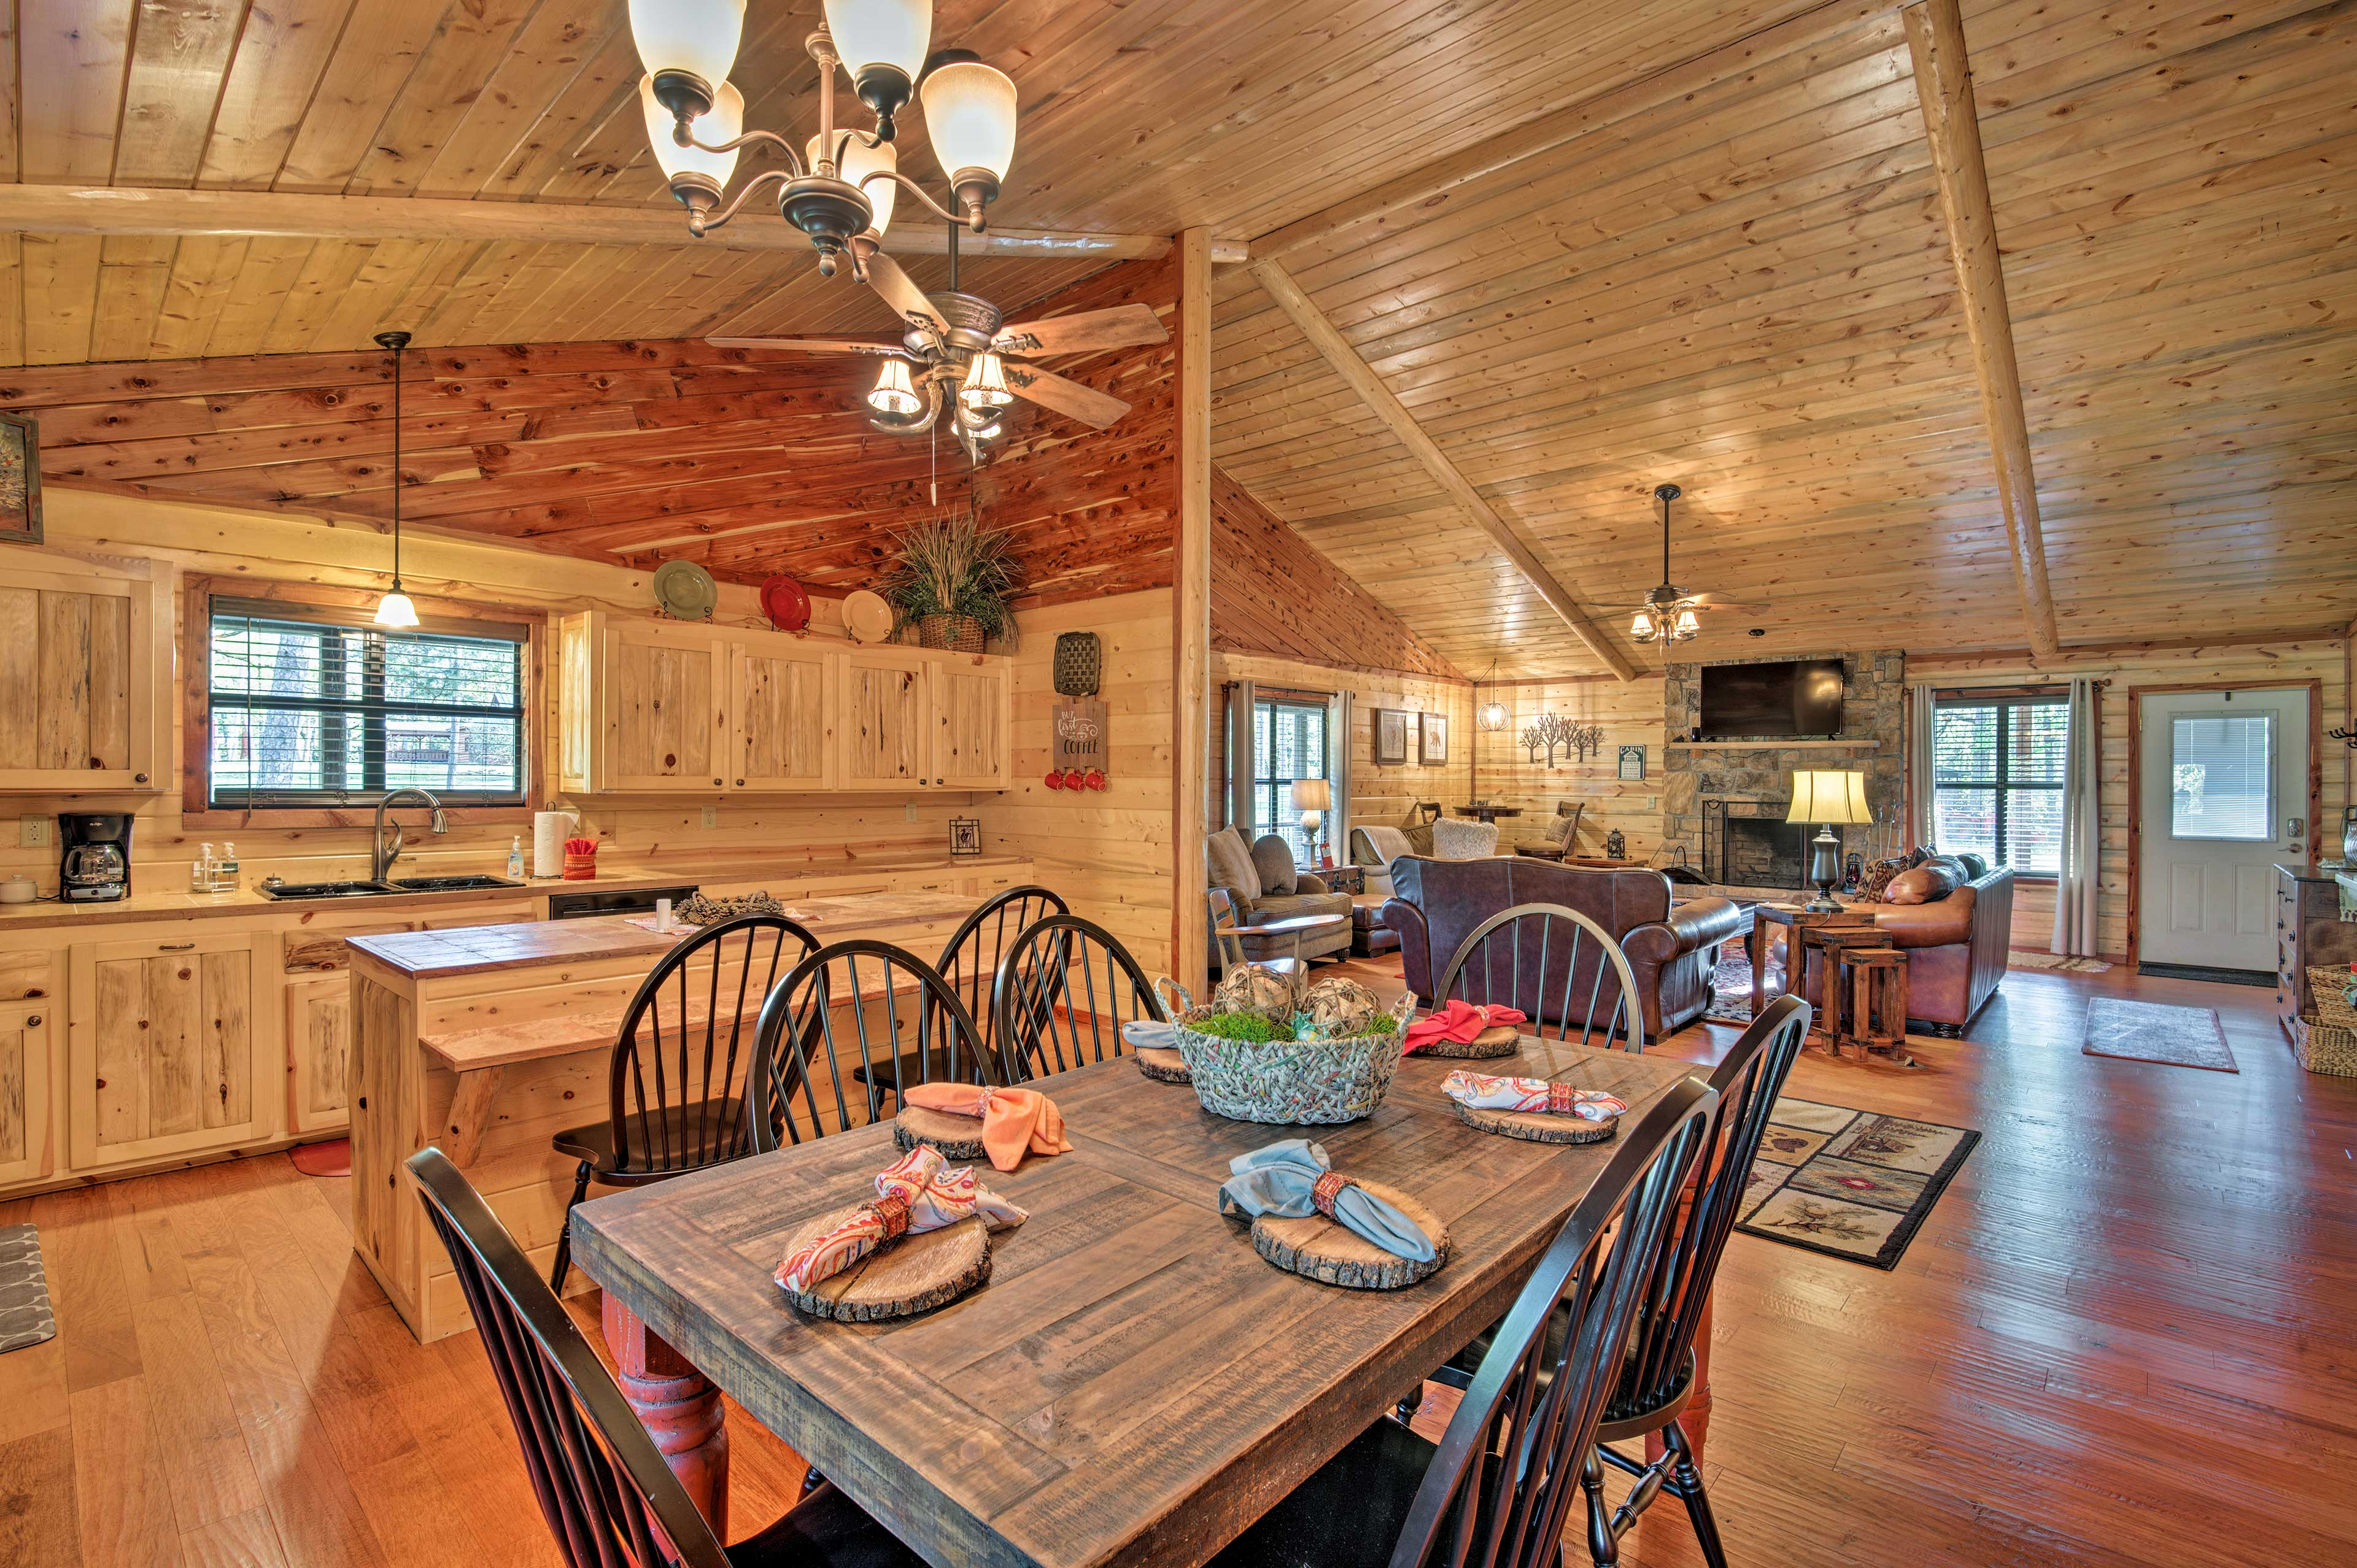 Good food and good company go hand-in-hand at this rustic table.